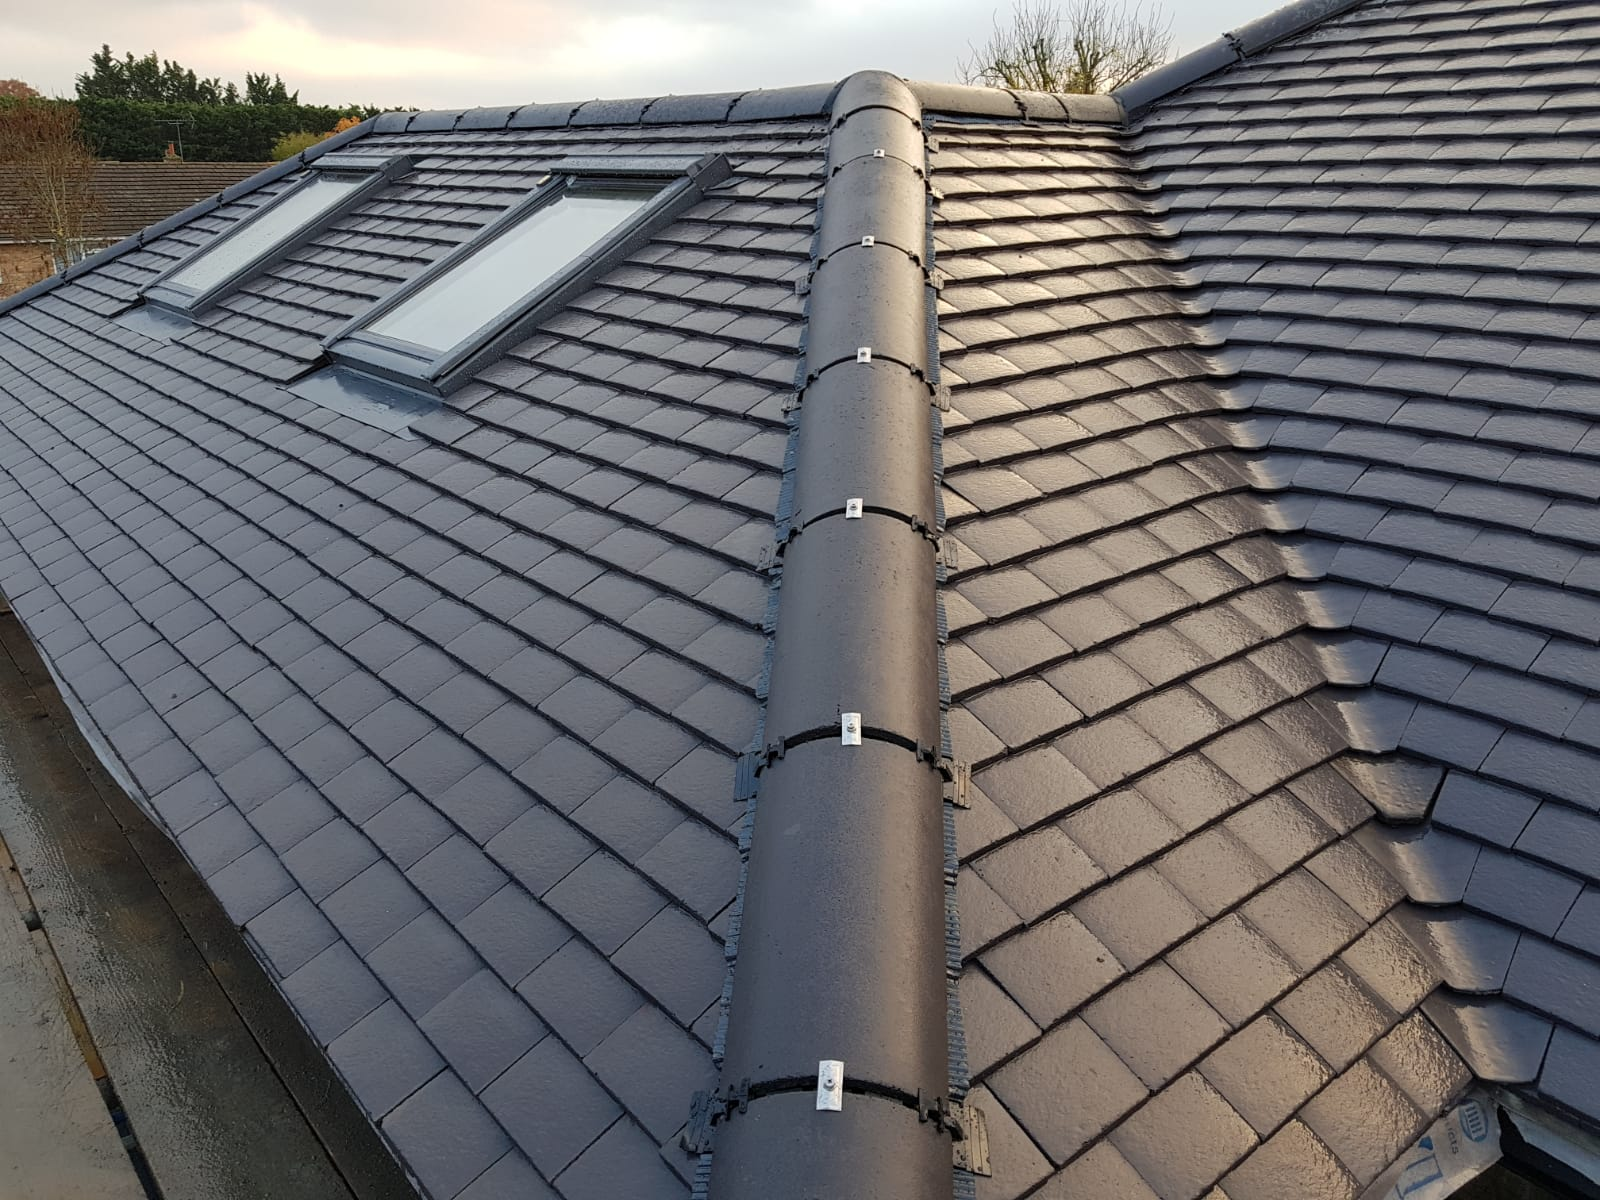 world-of-roofing-project (24)